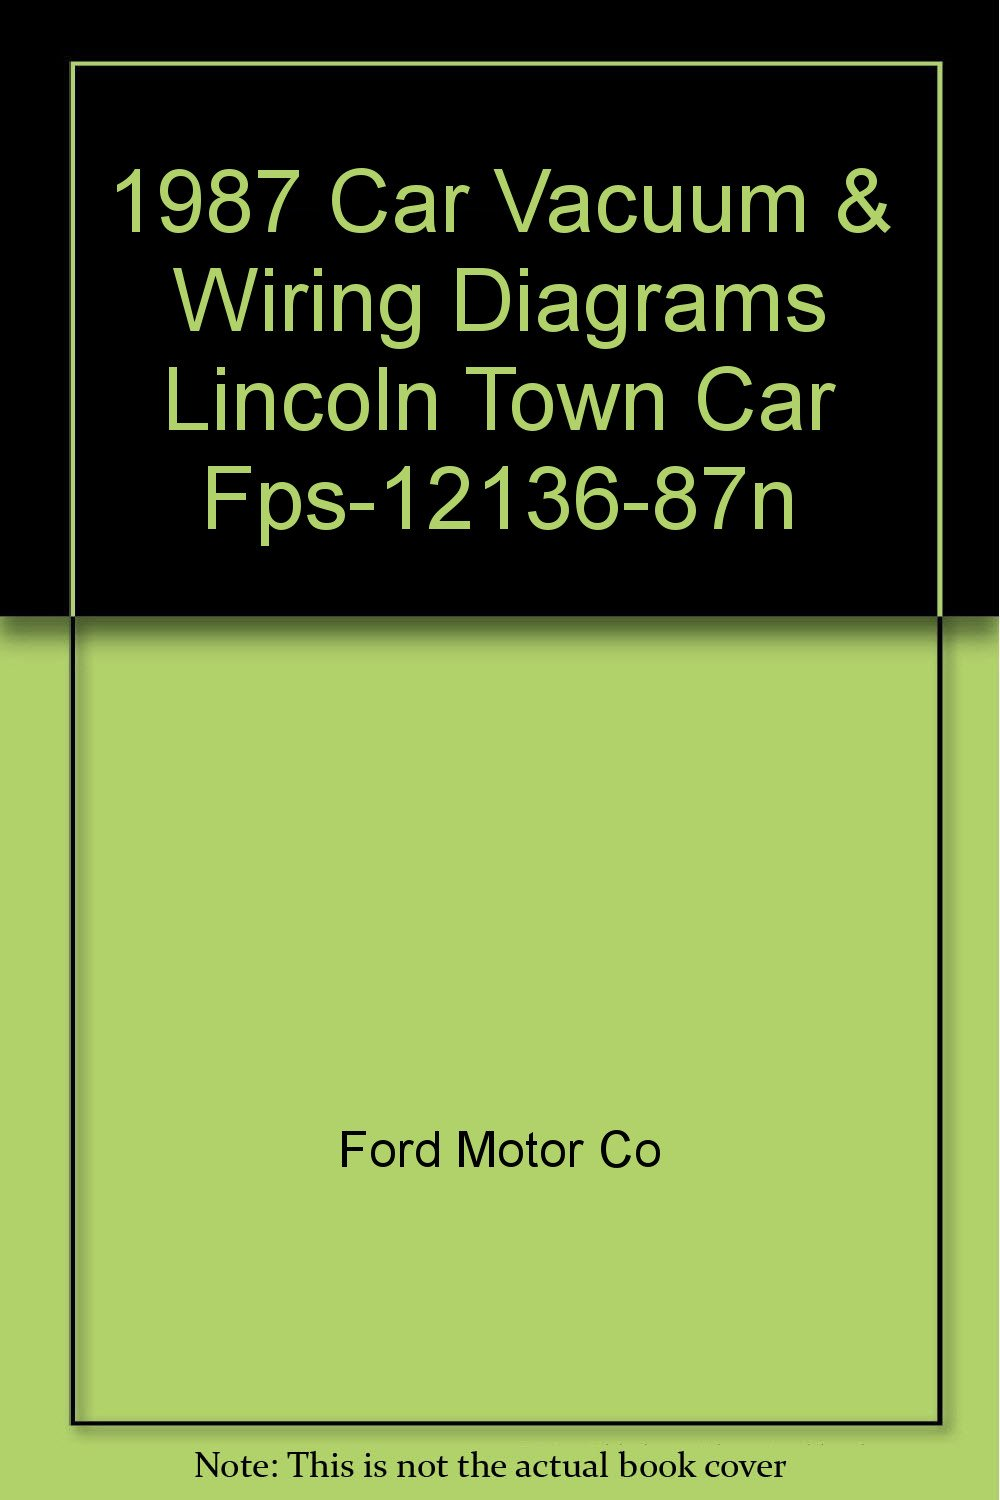 1987 Car Vacuum Wiring Diagrams Lincoln Town Fps 12136 87n Ford Motor Co Books